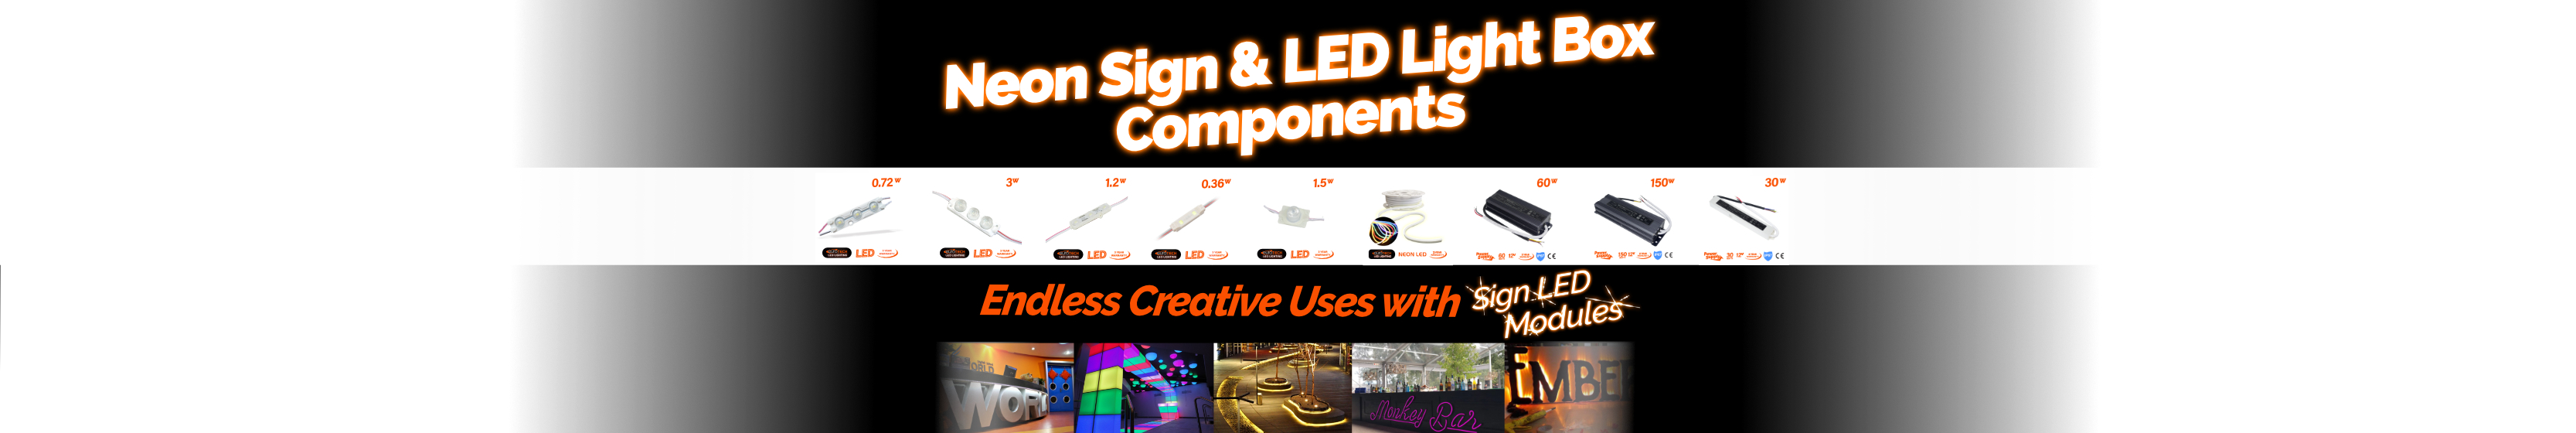 Neon sign led and light box modules